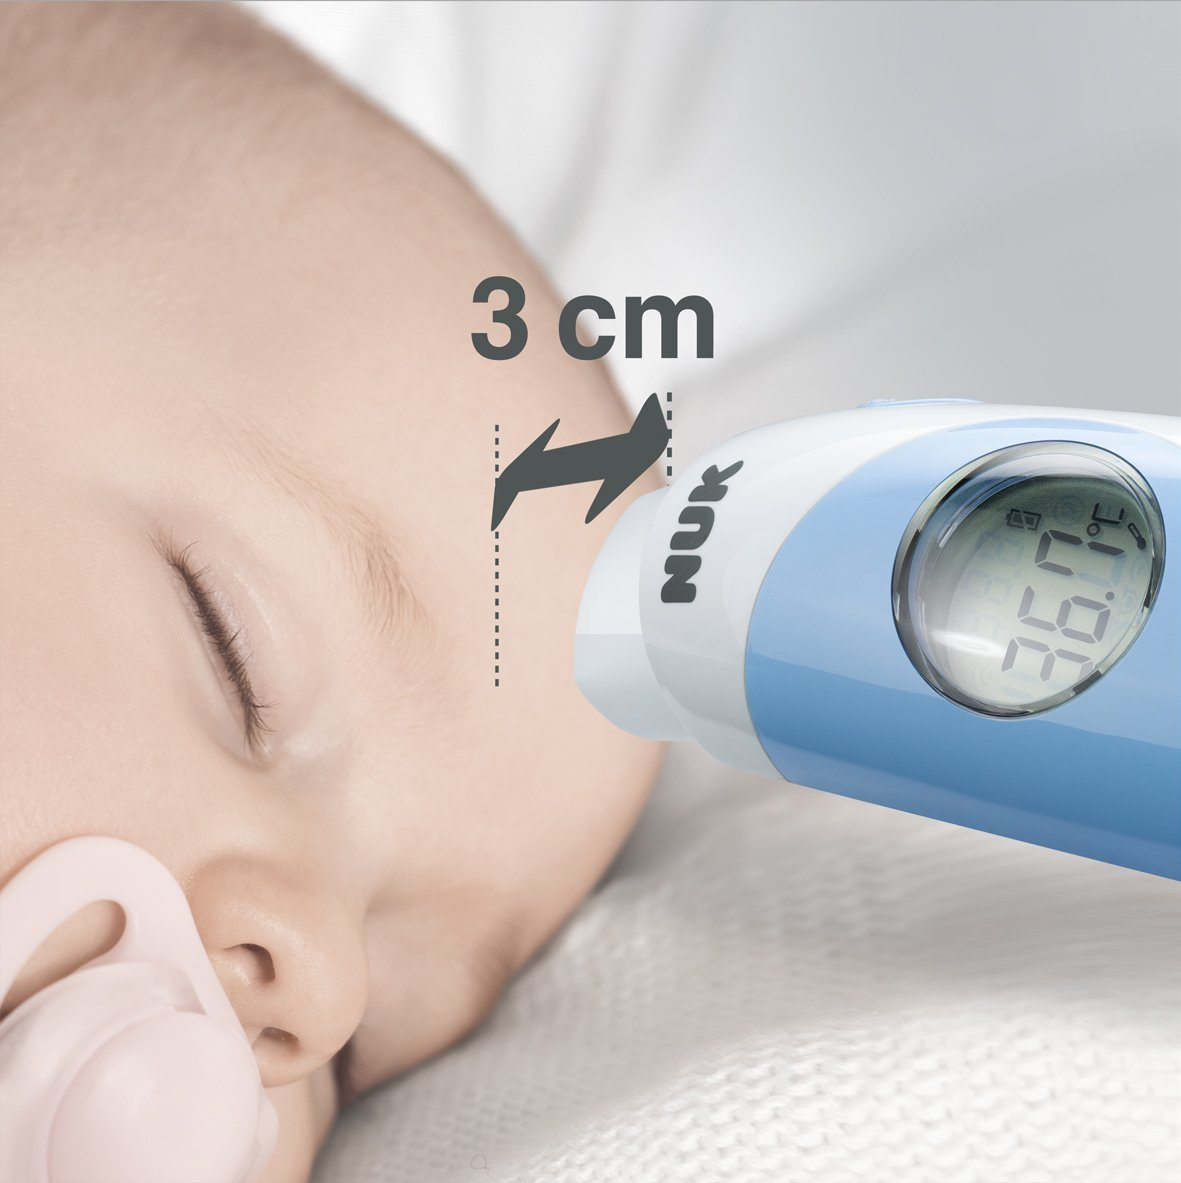 NUK: Flash Non-Contact Thermometer image